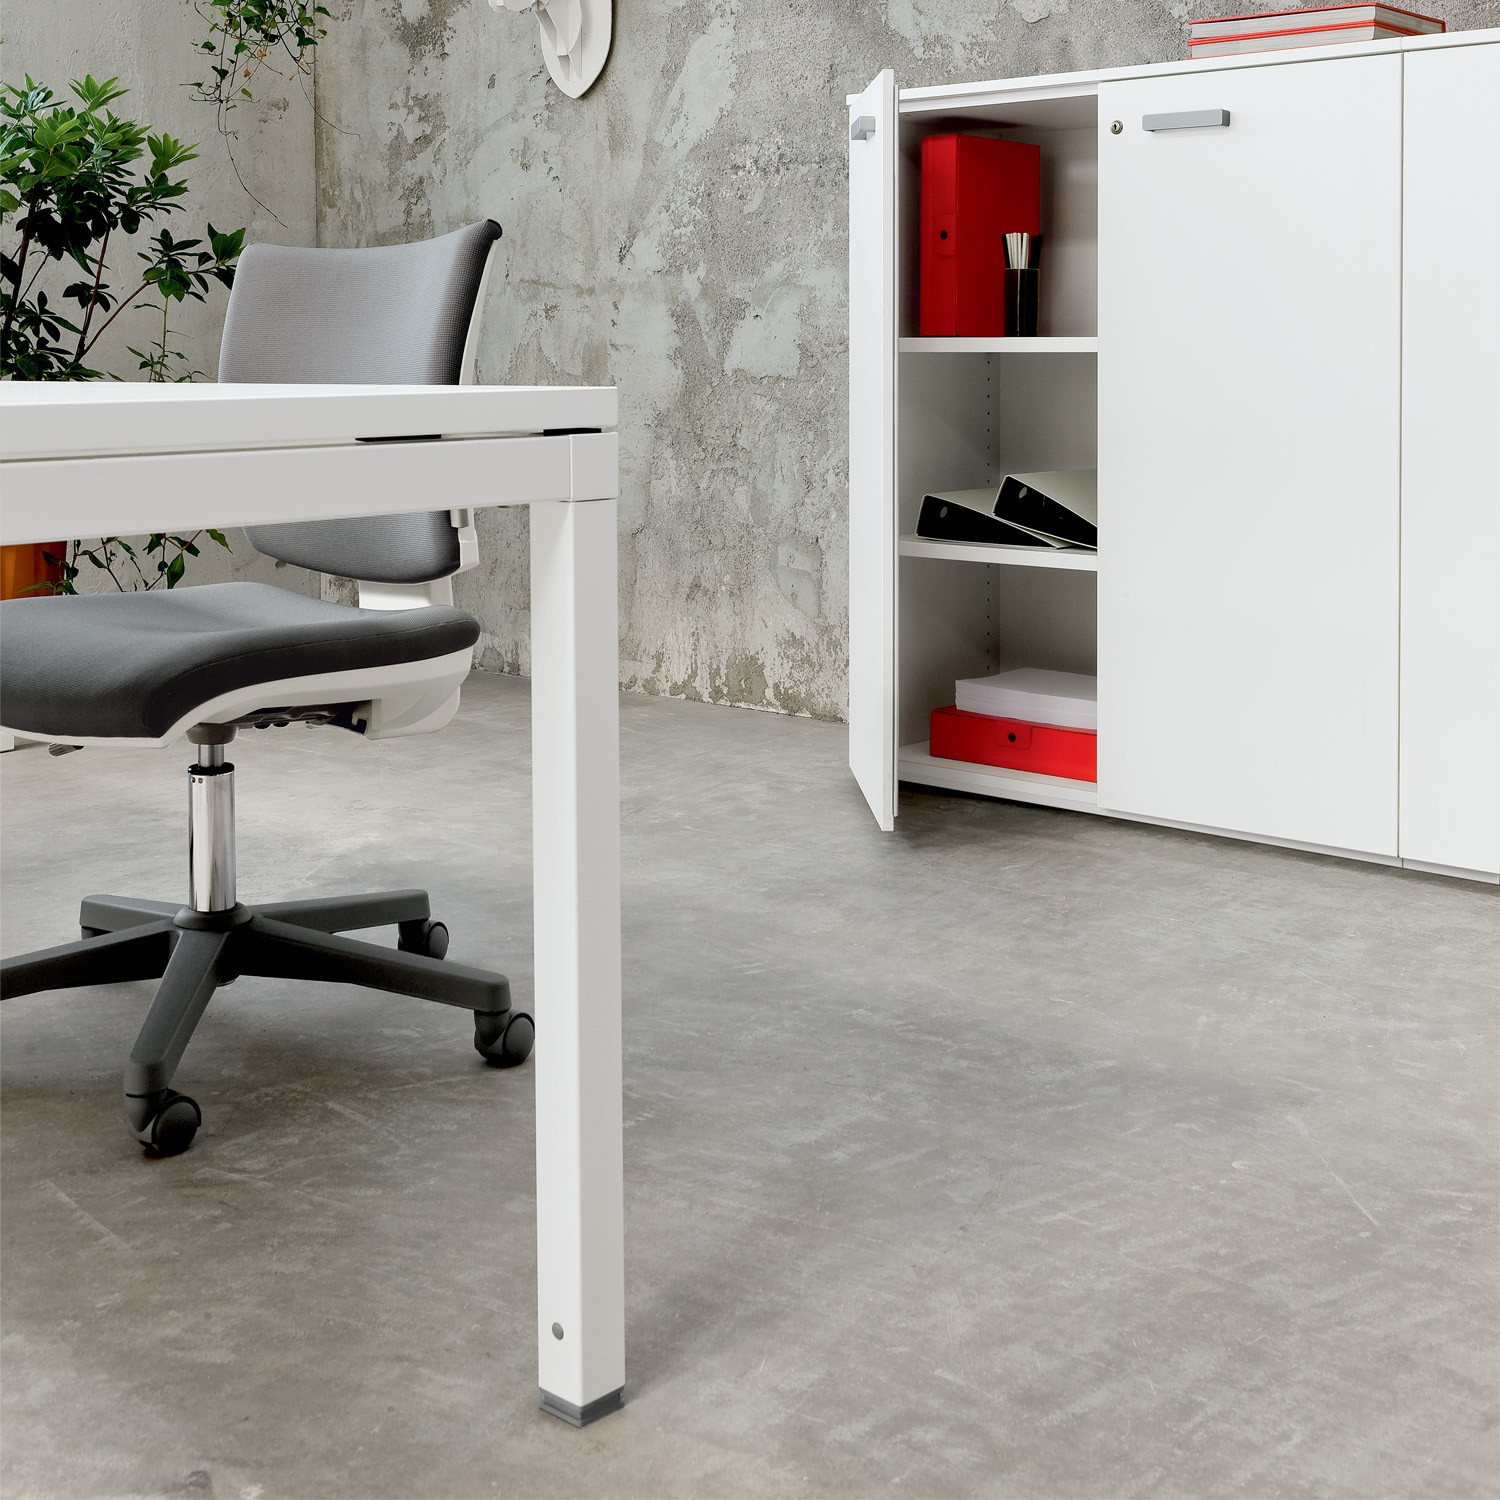 Link Executive Modular Desking System combined with Side Storage